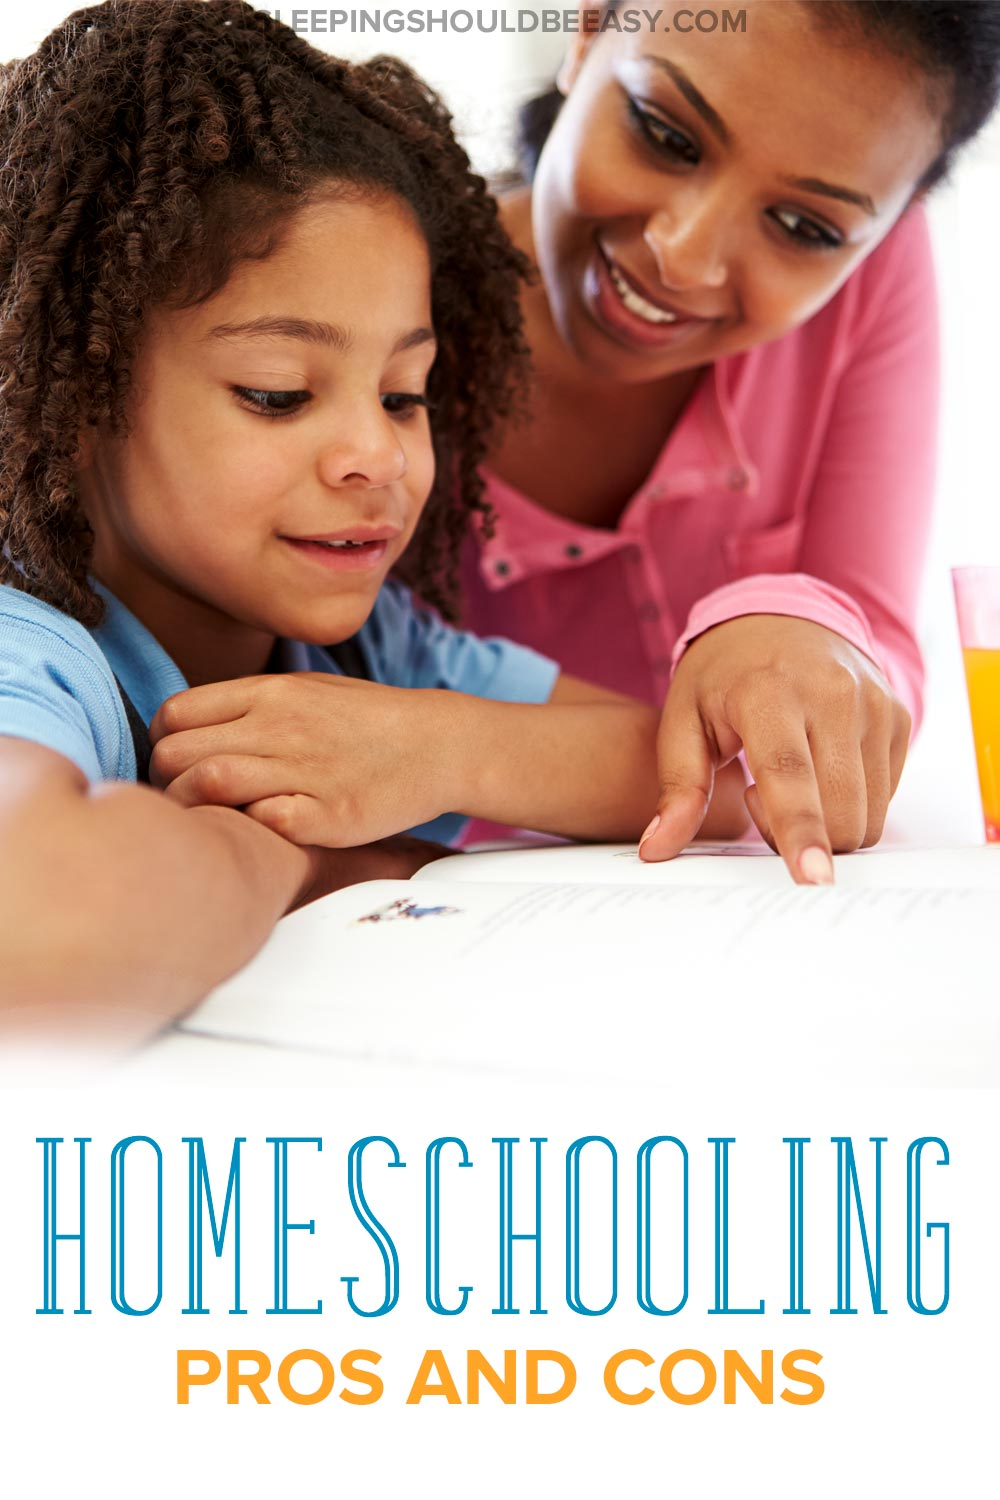 Homeschooling pros and cons: mom homeschooling her daughter